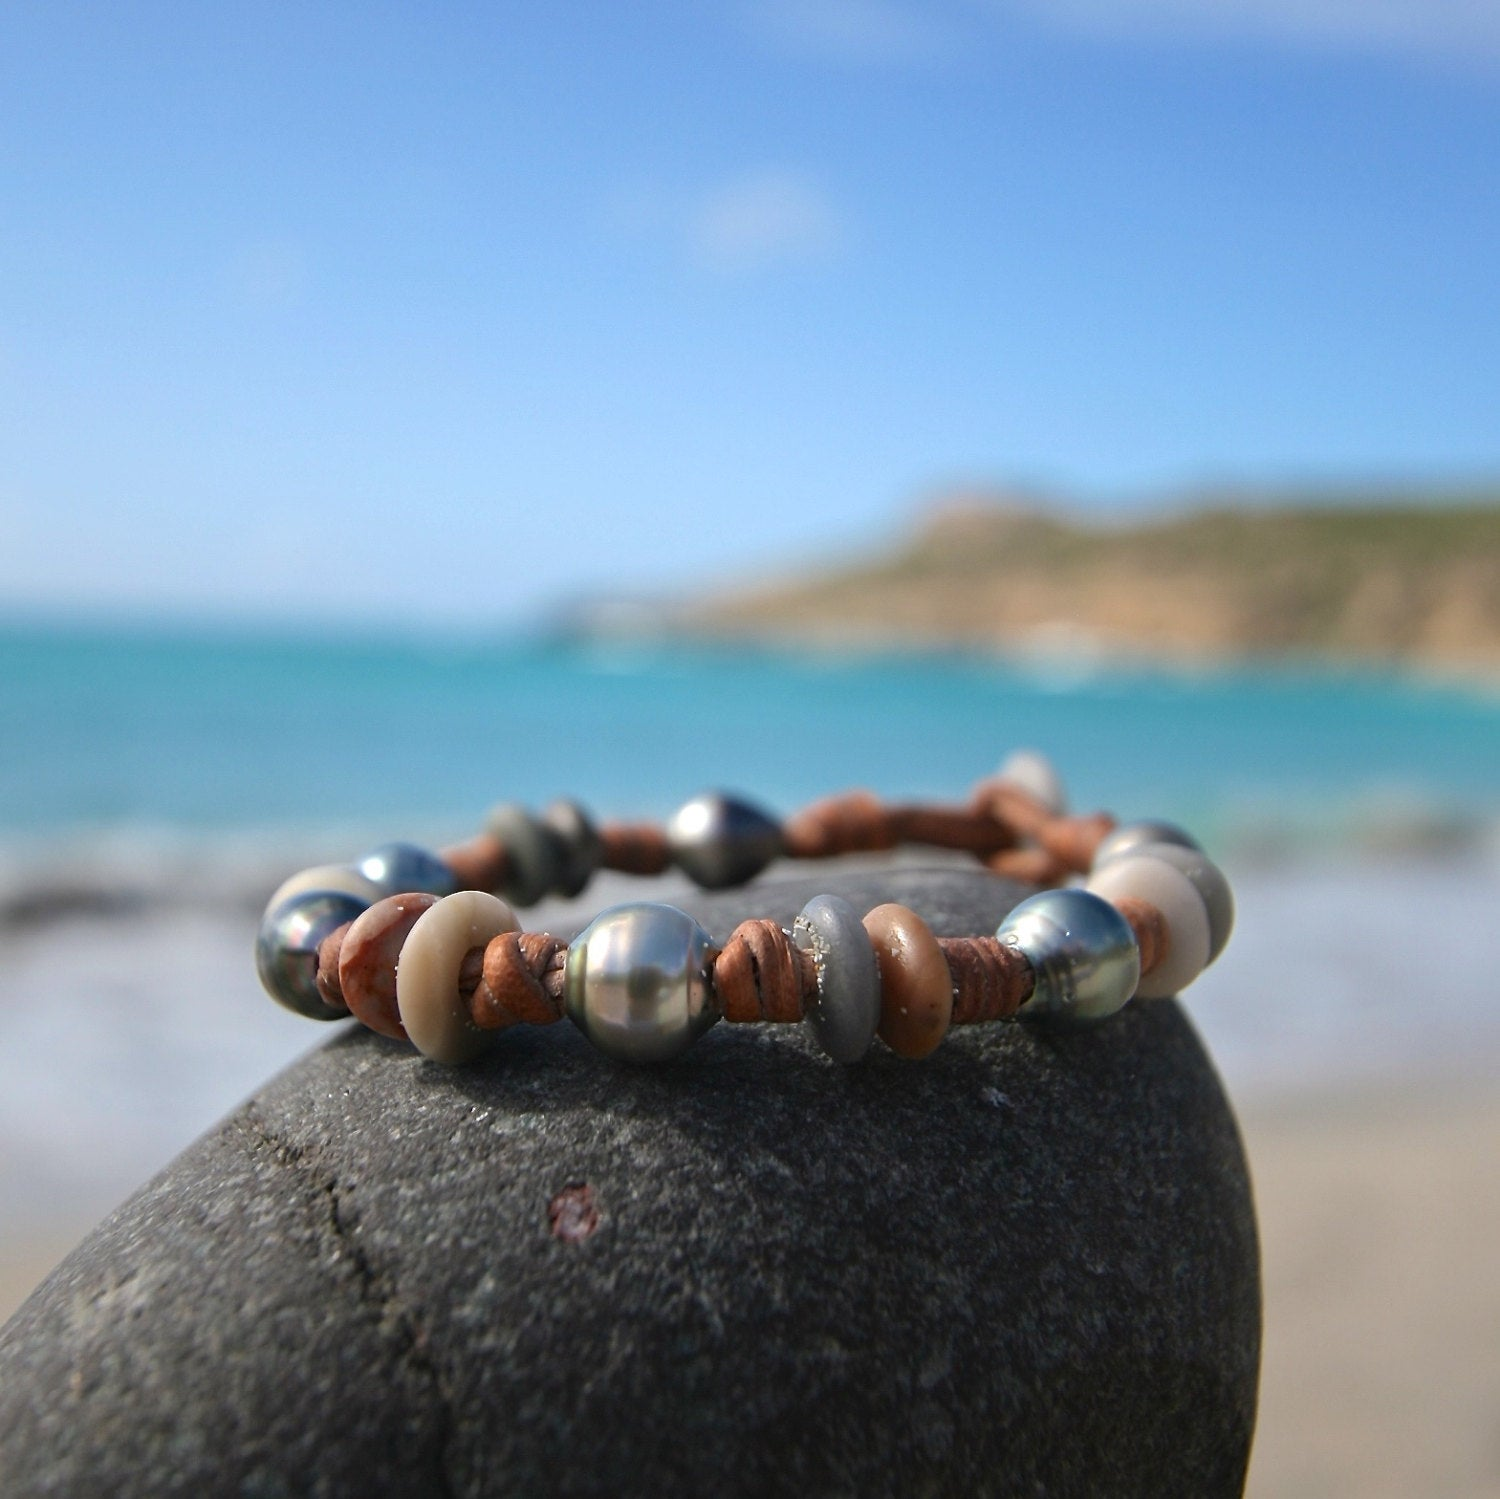 Little Tahitian fine pearls strung with sea pebbles on leather, bohochic organic bracelet, beach summer jewelry, St Barts, seaside coastal